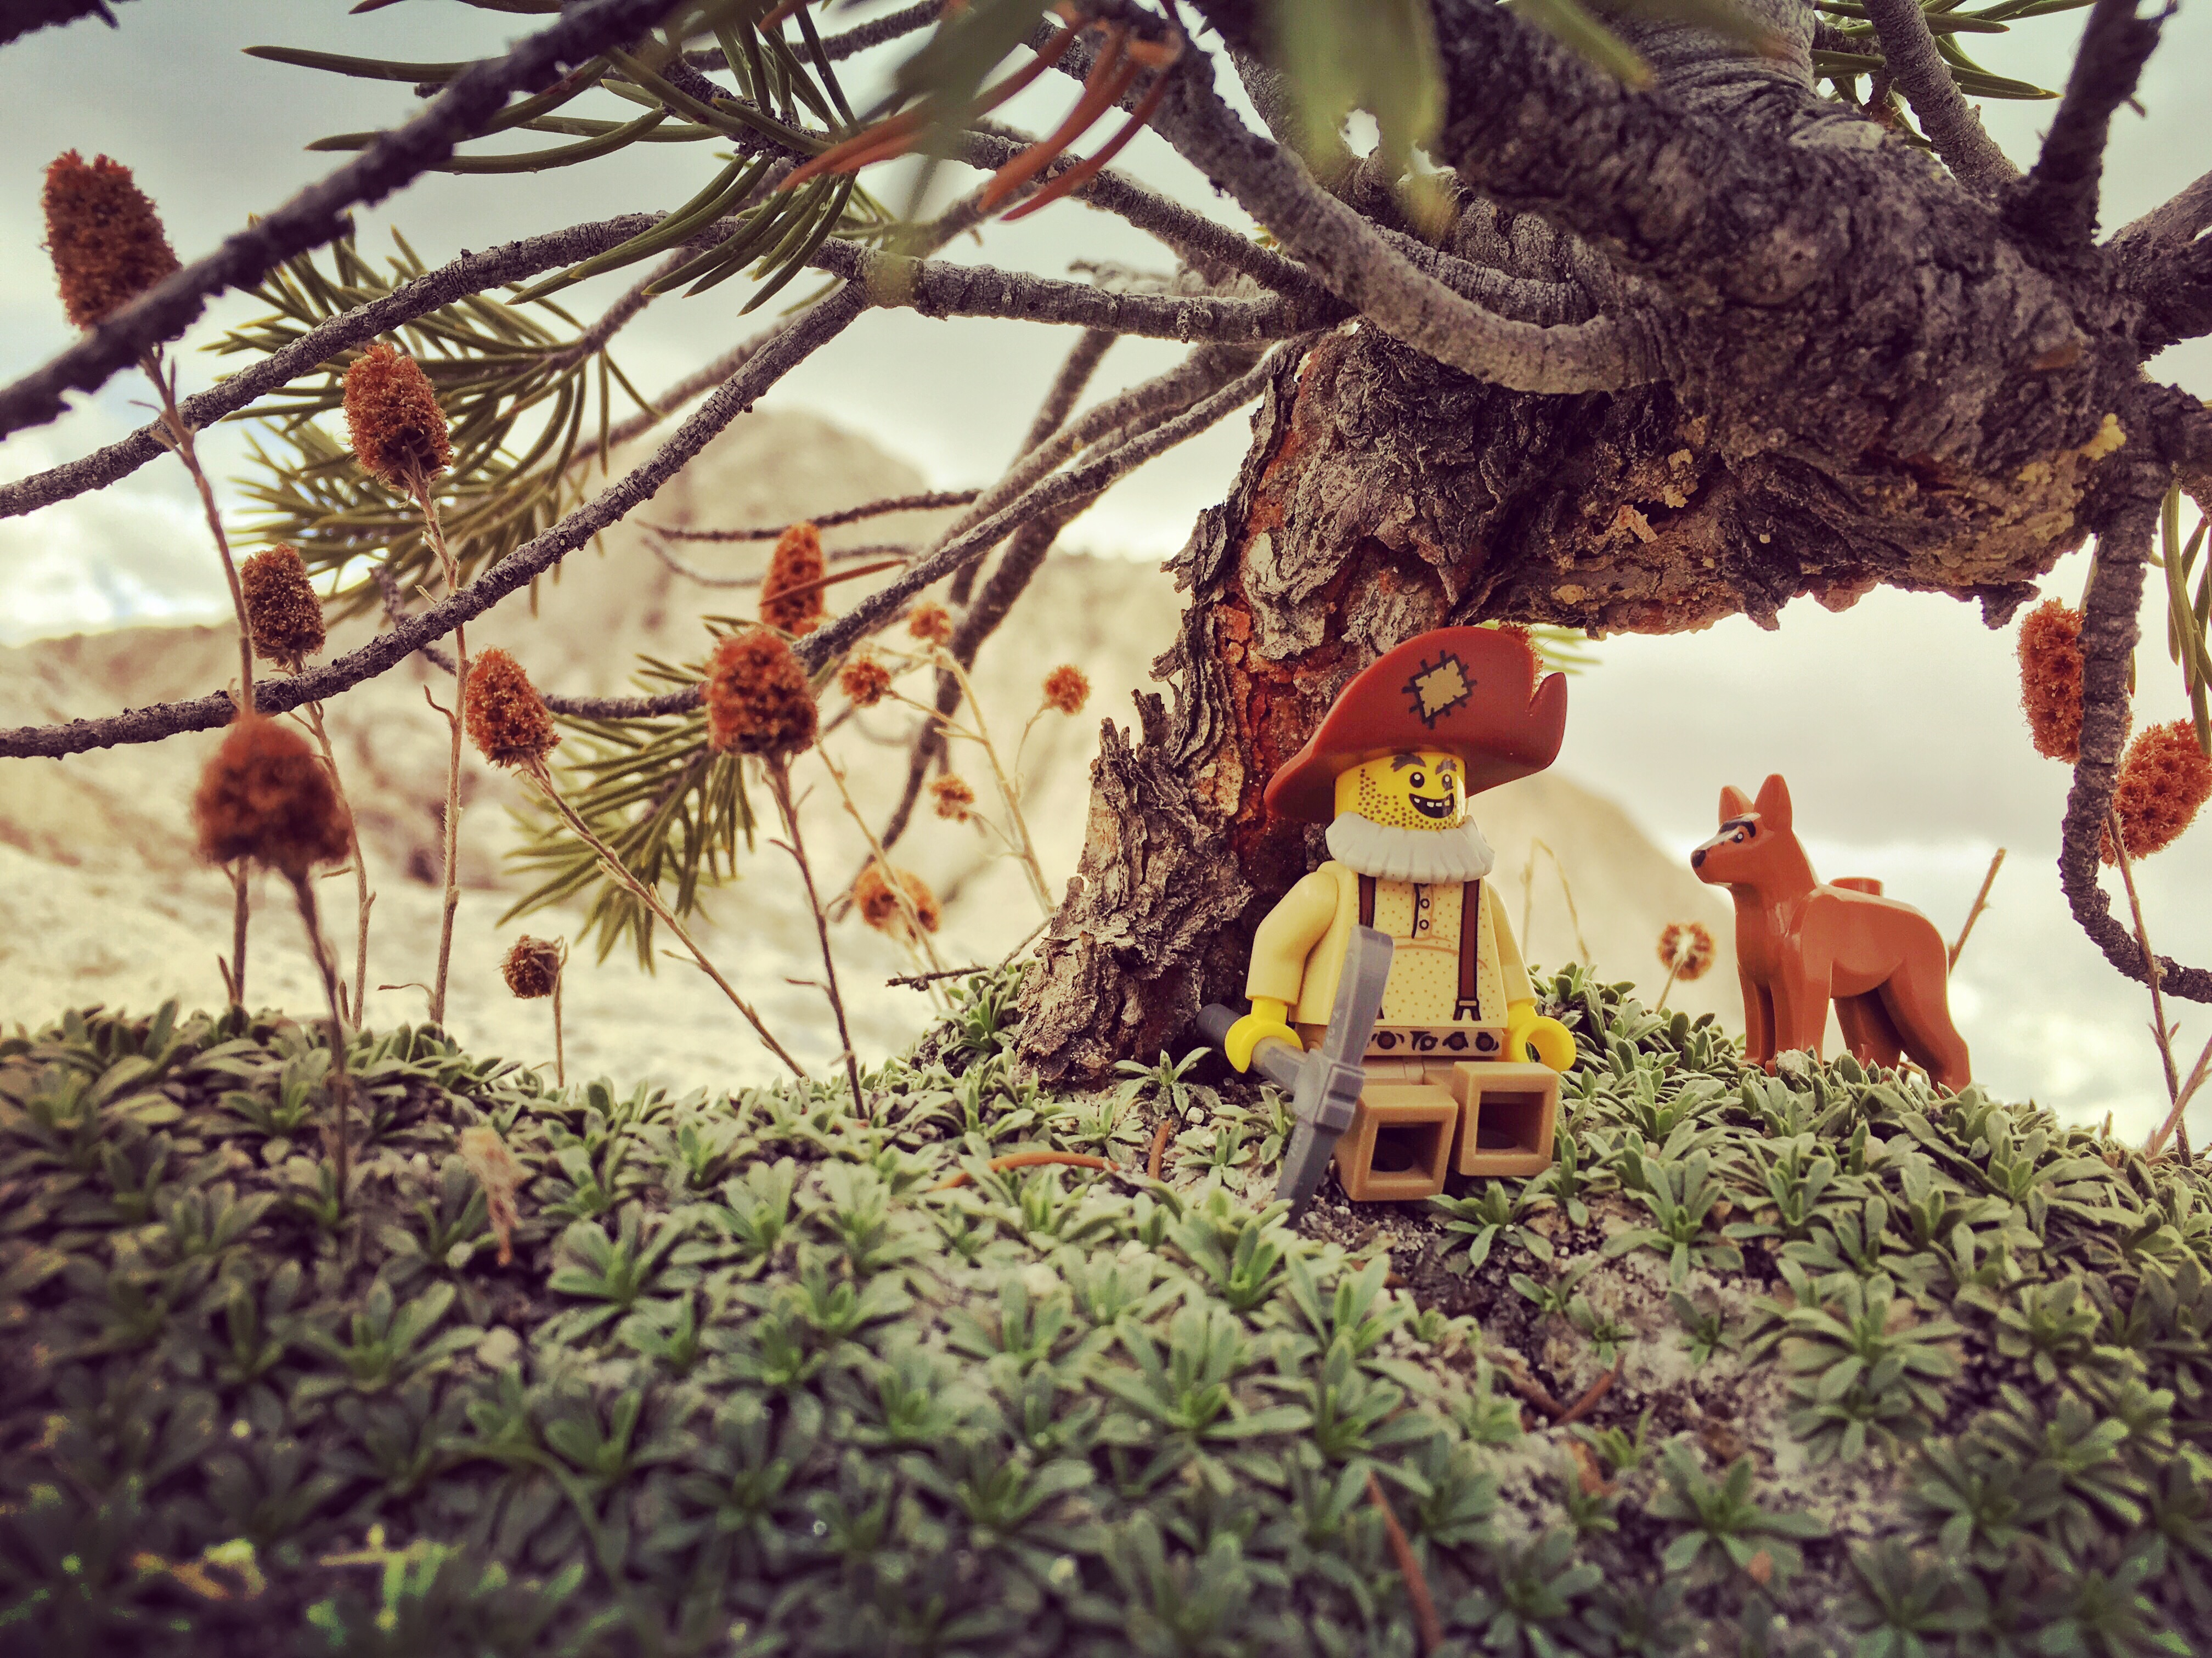 Character Development in LEGO Photography